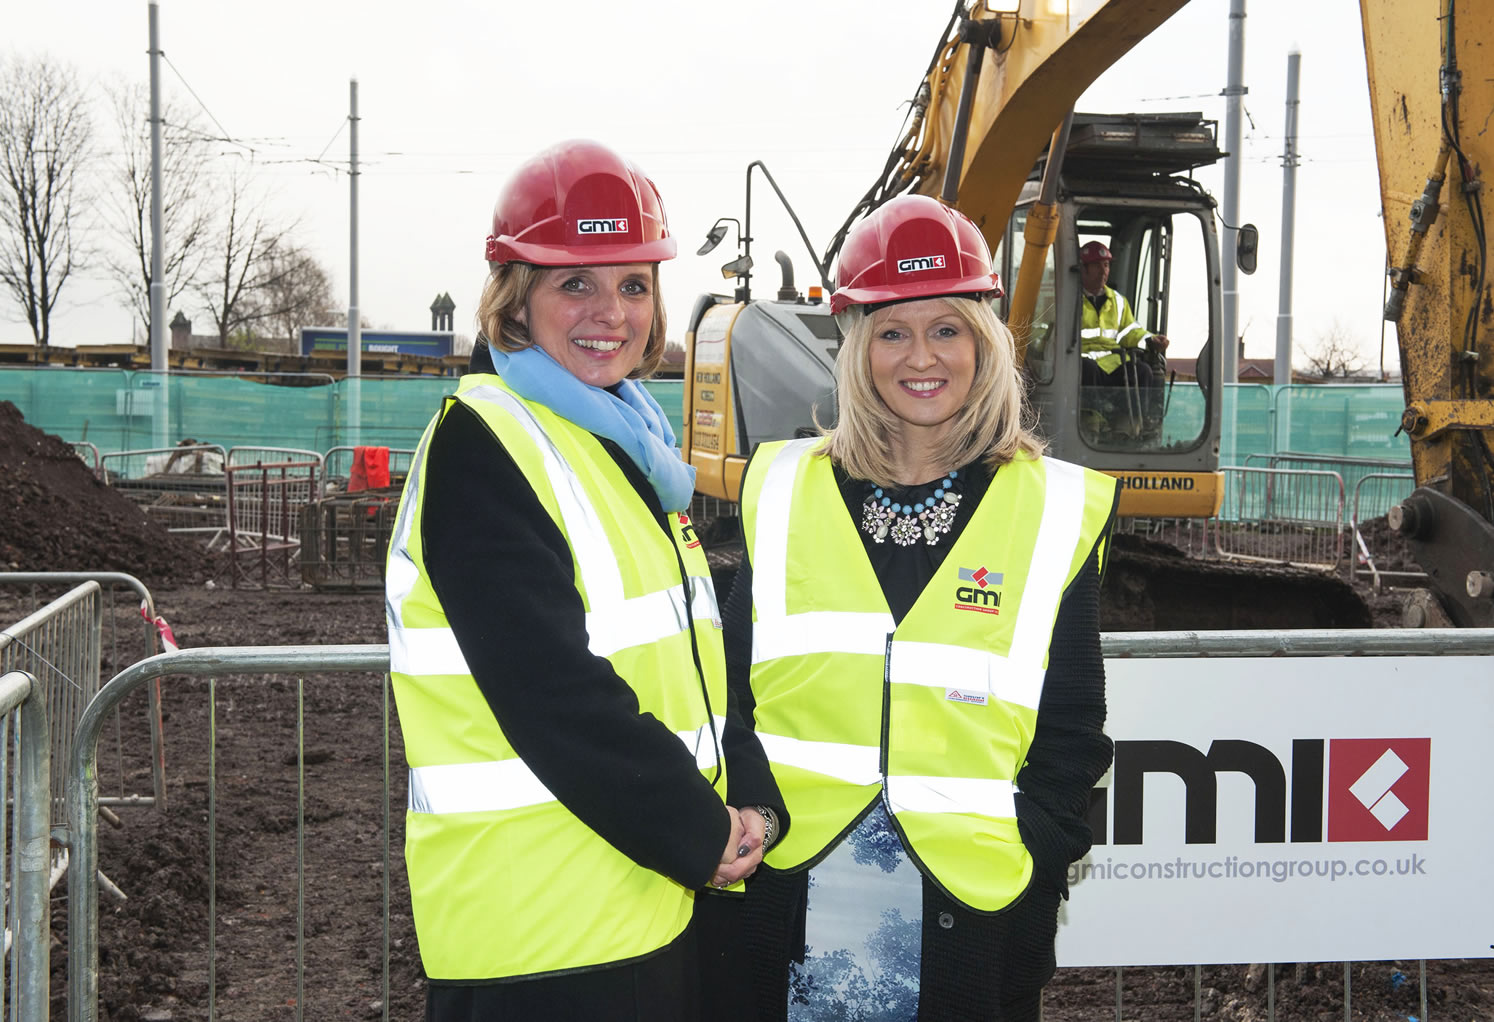 Employment Minister visits Scarborough's Hat Box residential scheme in Manchester